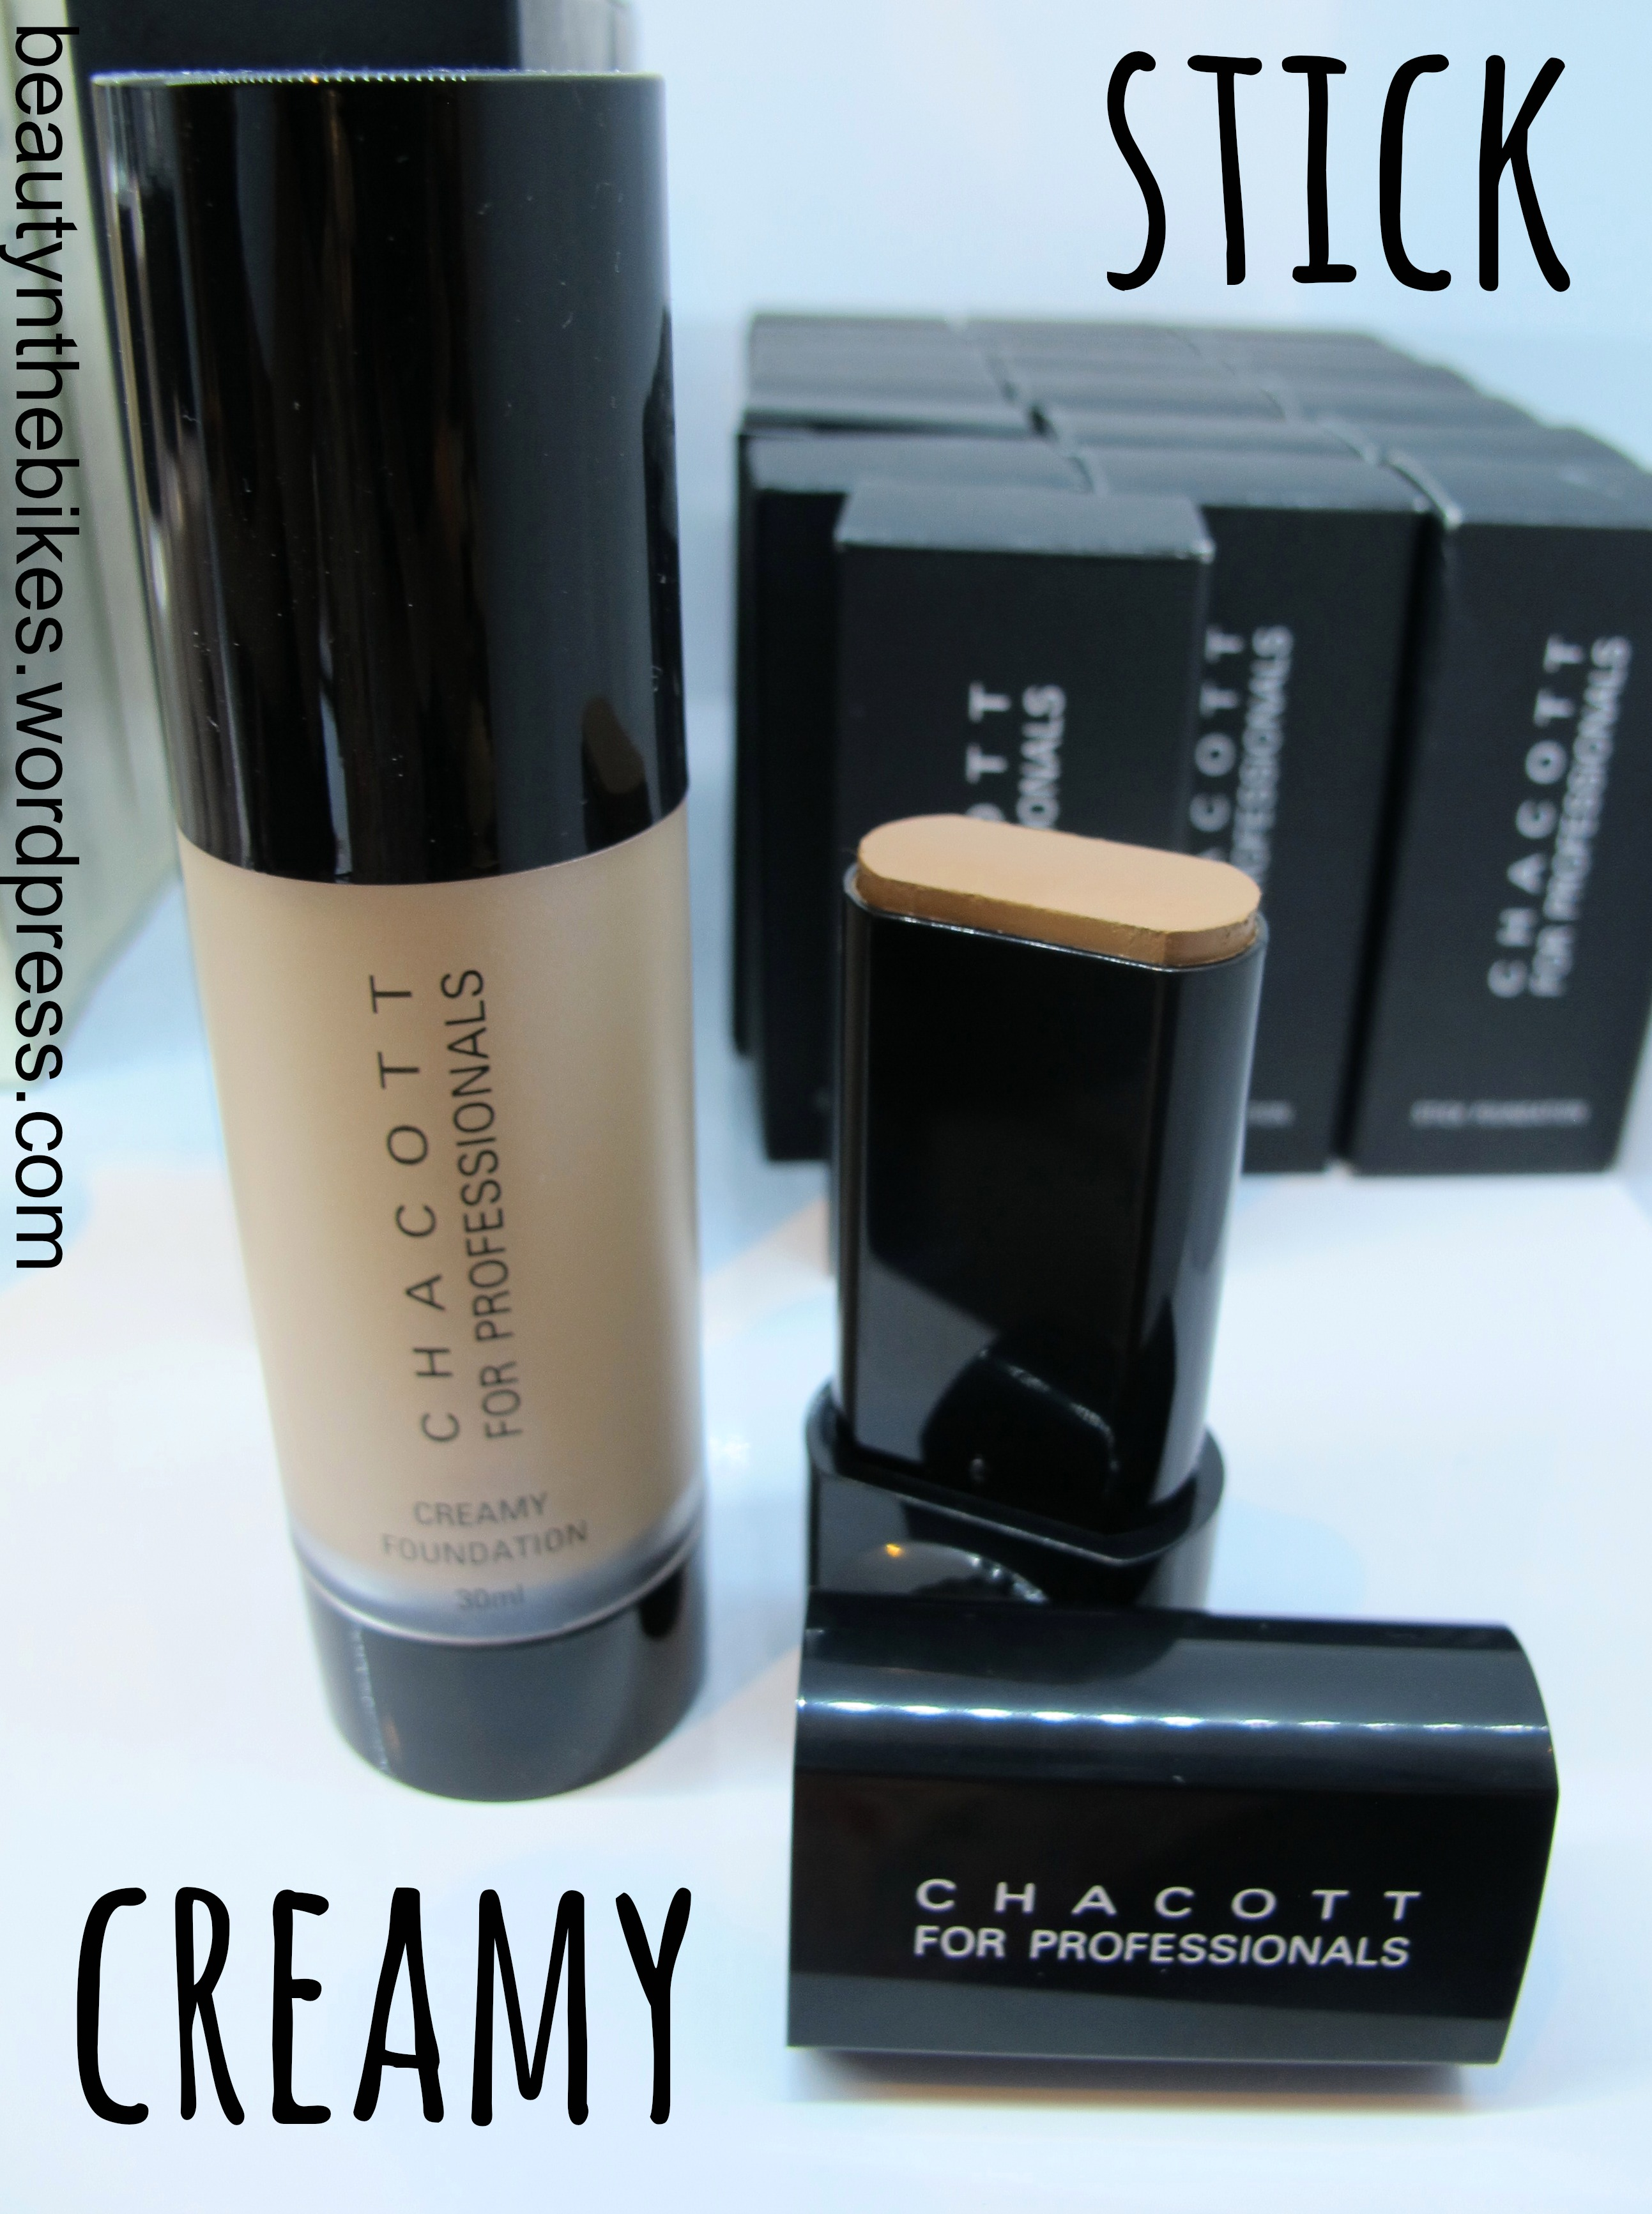 Cosmetics And Makeup: Japanese Brand Chacott Cosmetics Launches At Plaza @ Cosme